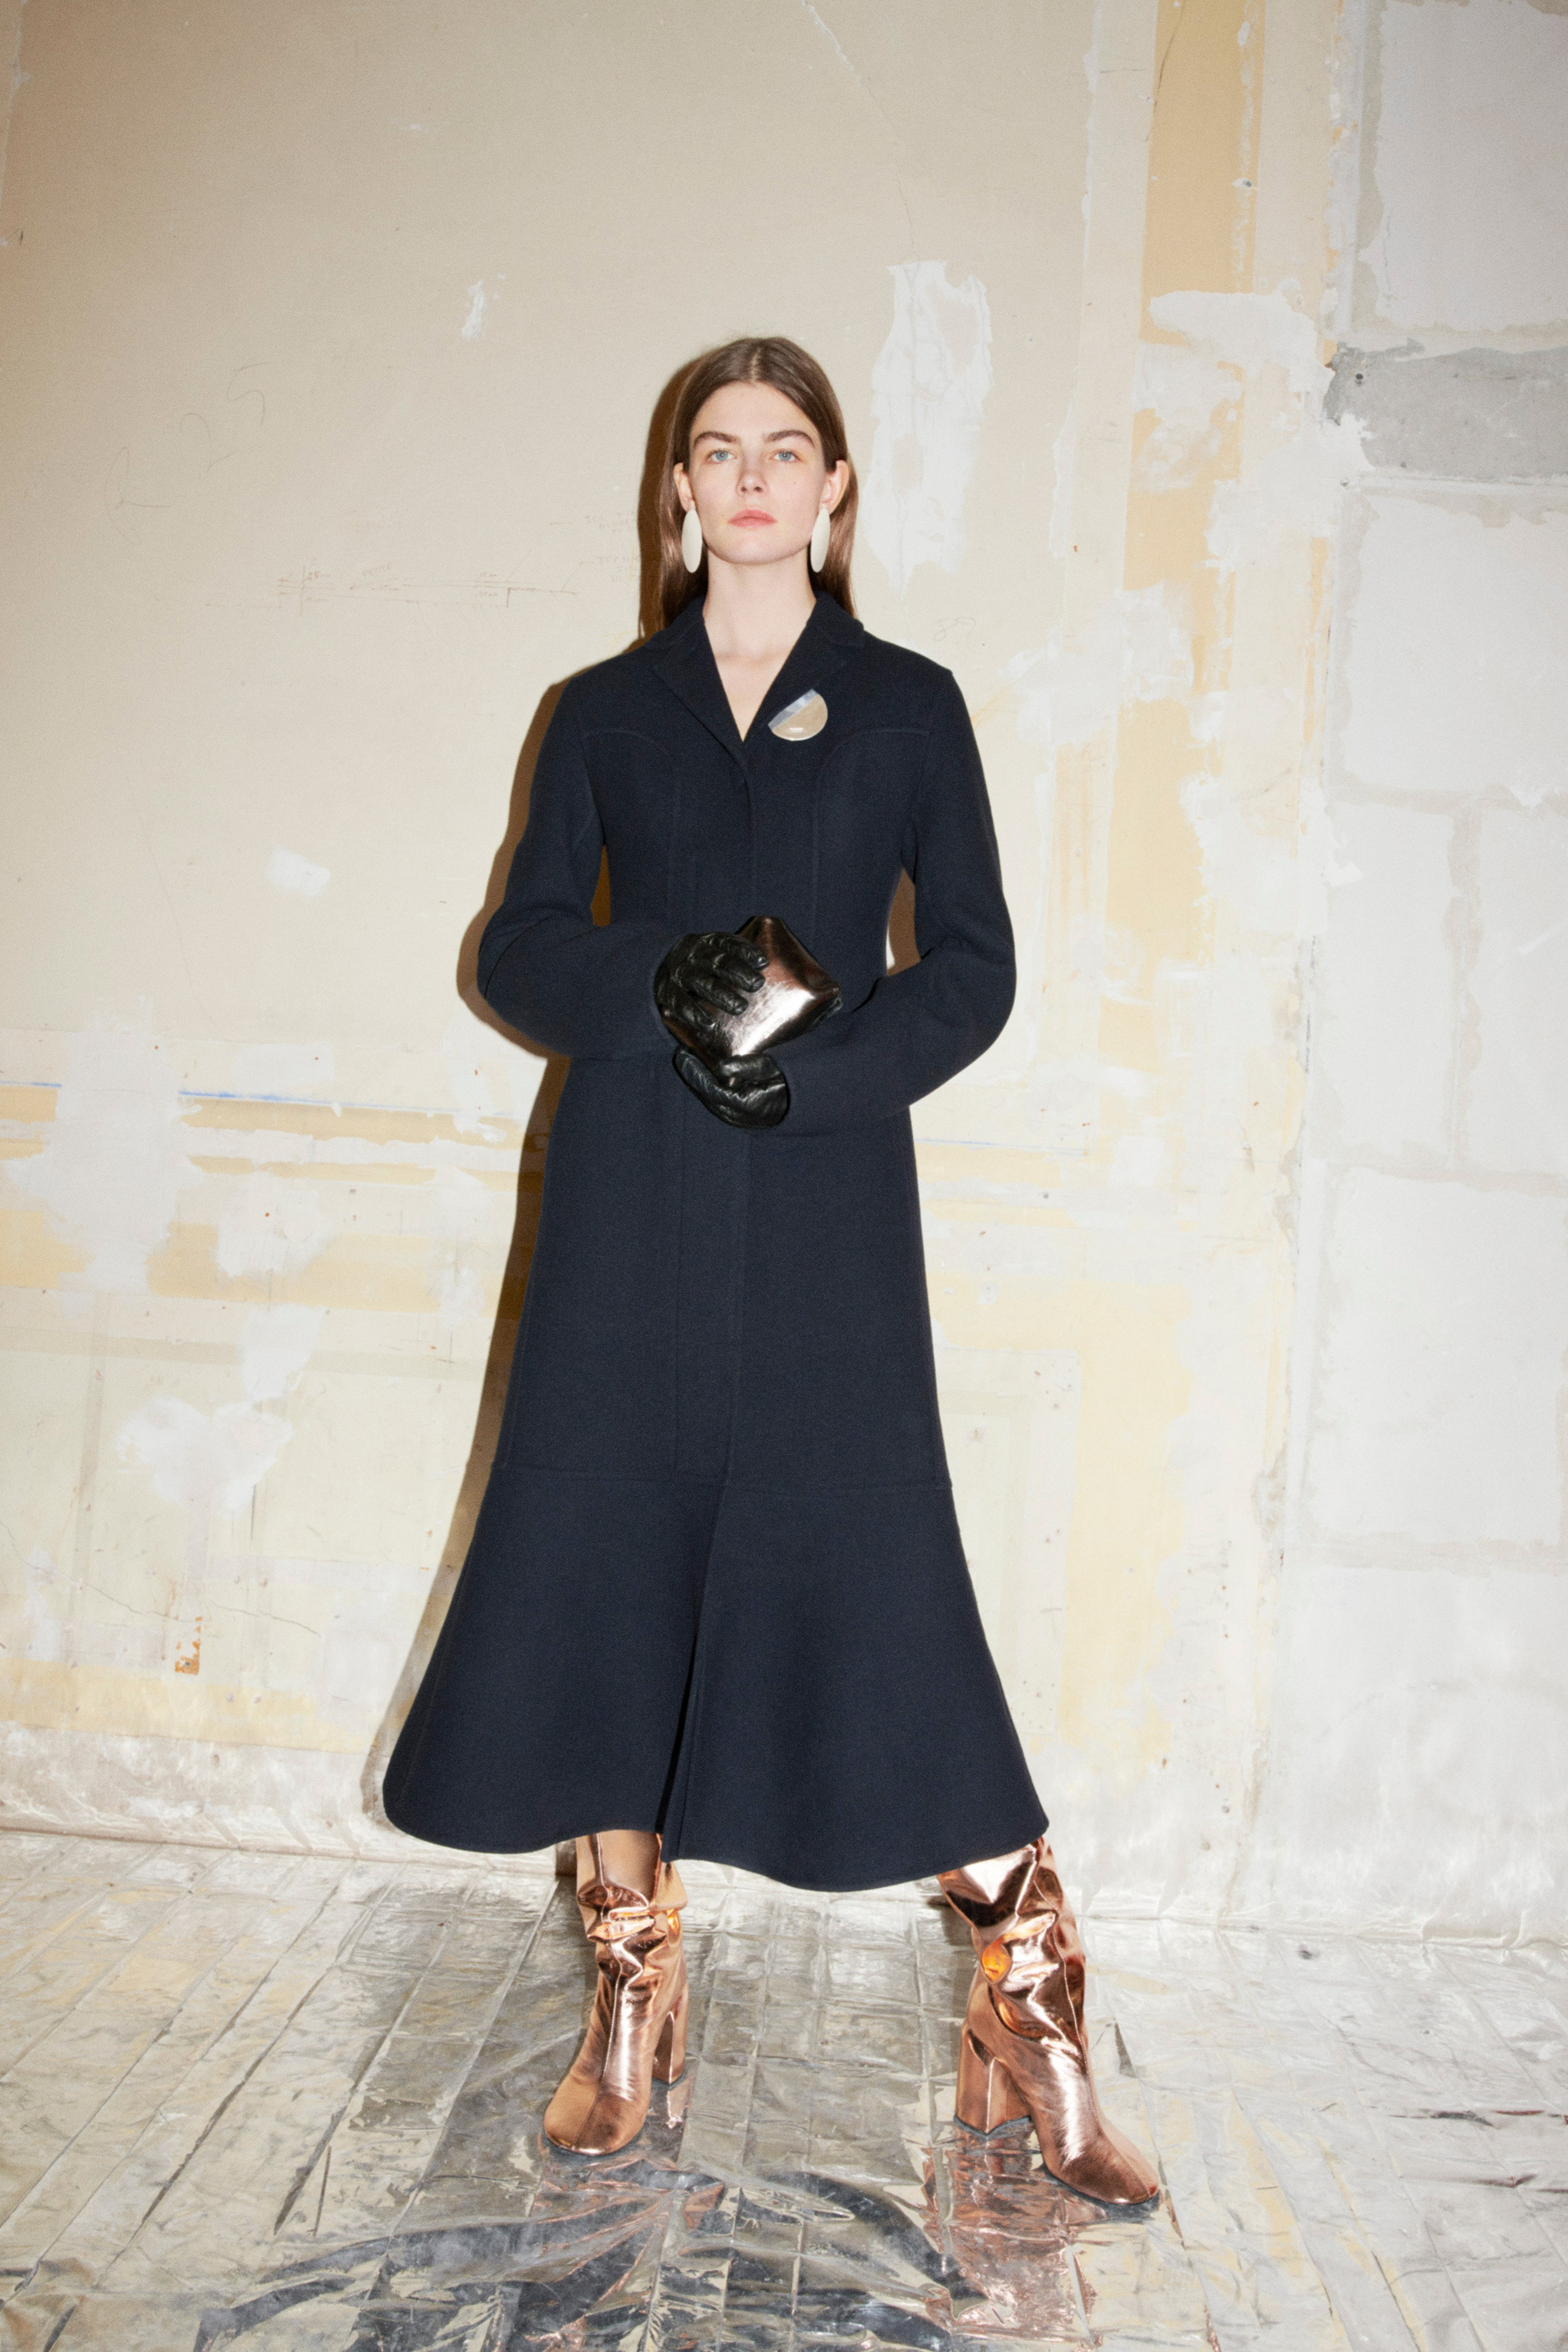 For walks in the fresh air: A seasonal collection of Jil Sander arrived at Asthik (photo 35)